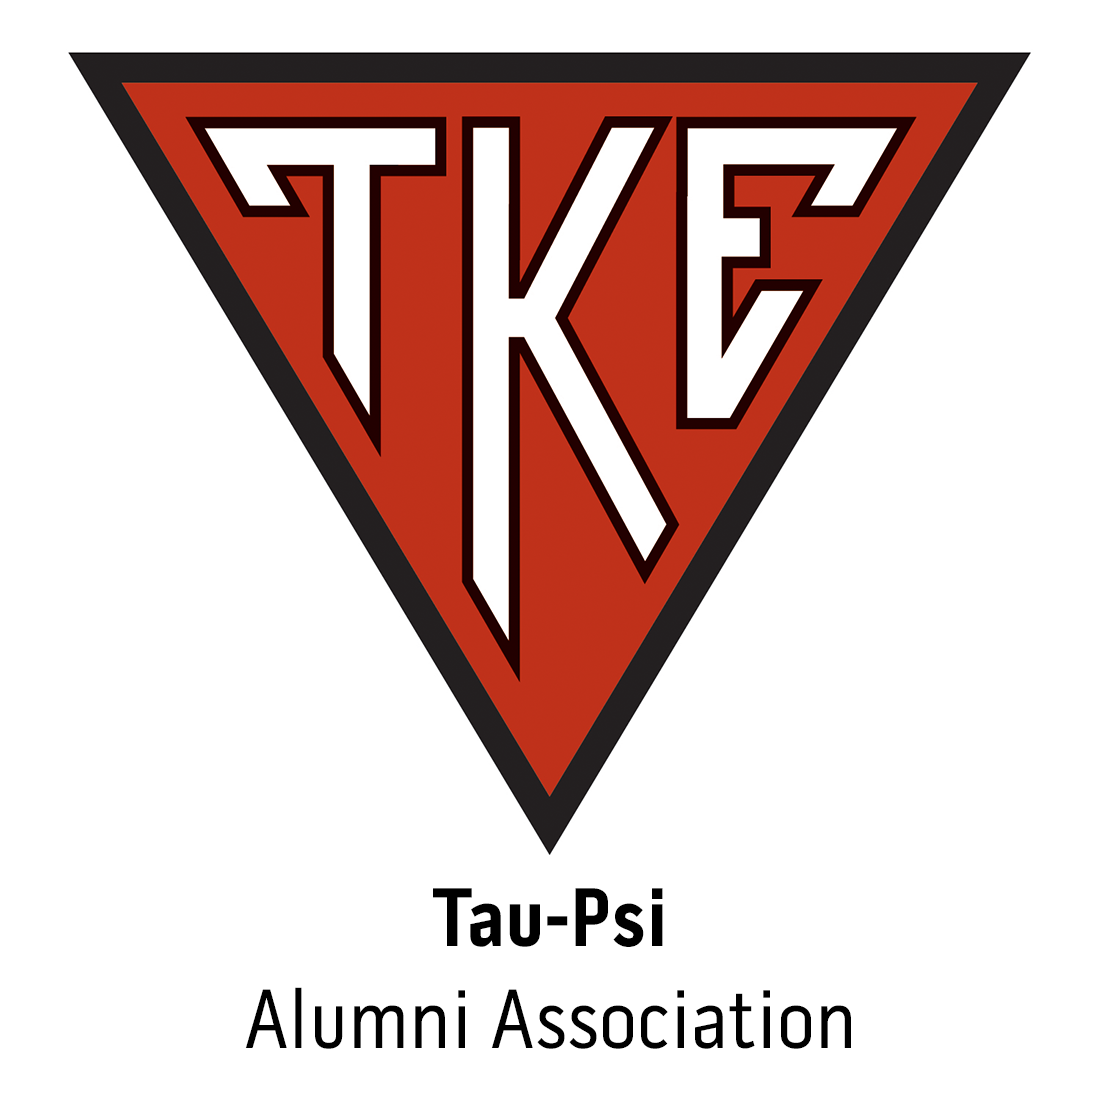 Tau-Psi Alumni Association Alumni at University of West Florida